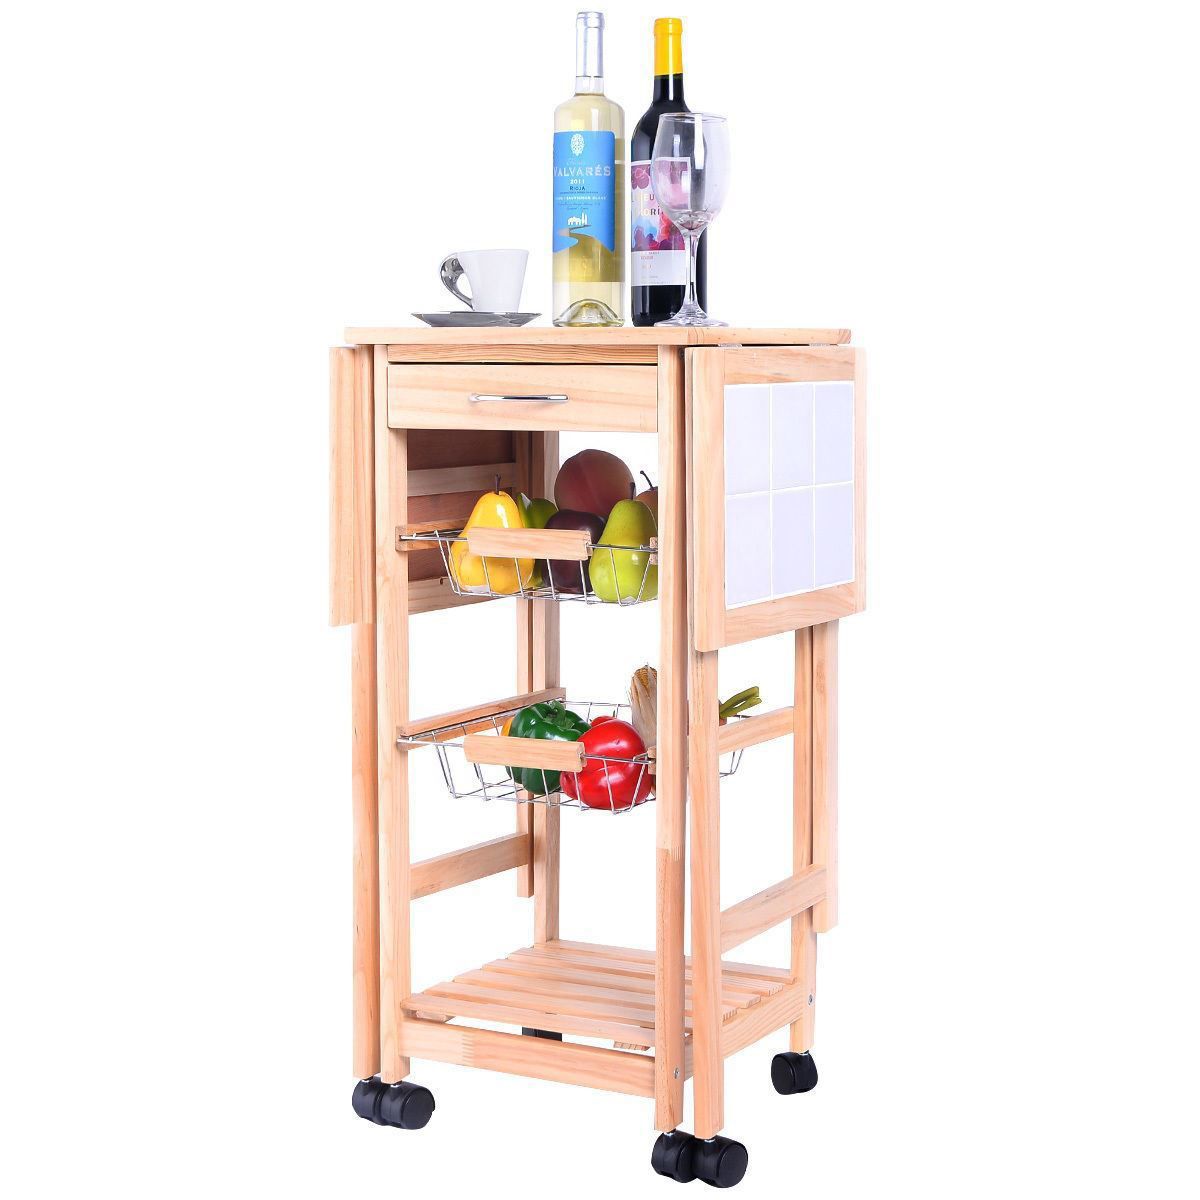 Picture of Portable Kitchen Dining Trolley Cart Stand